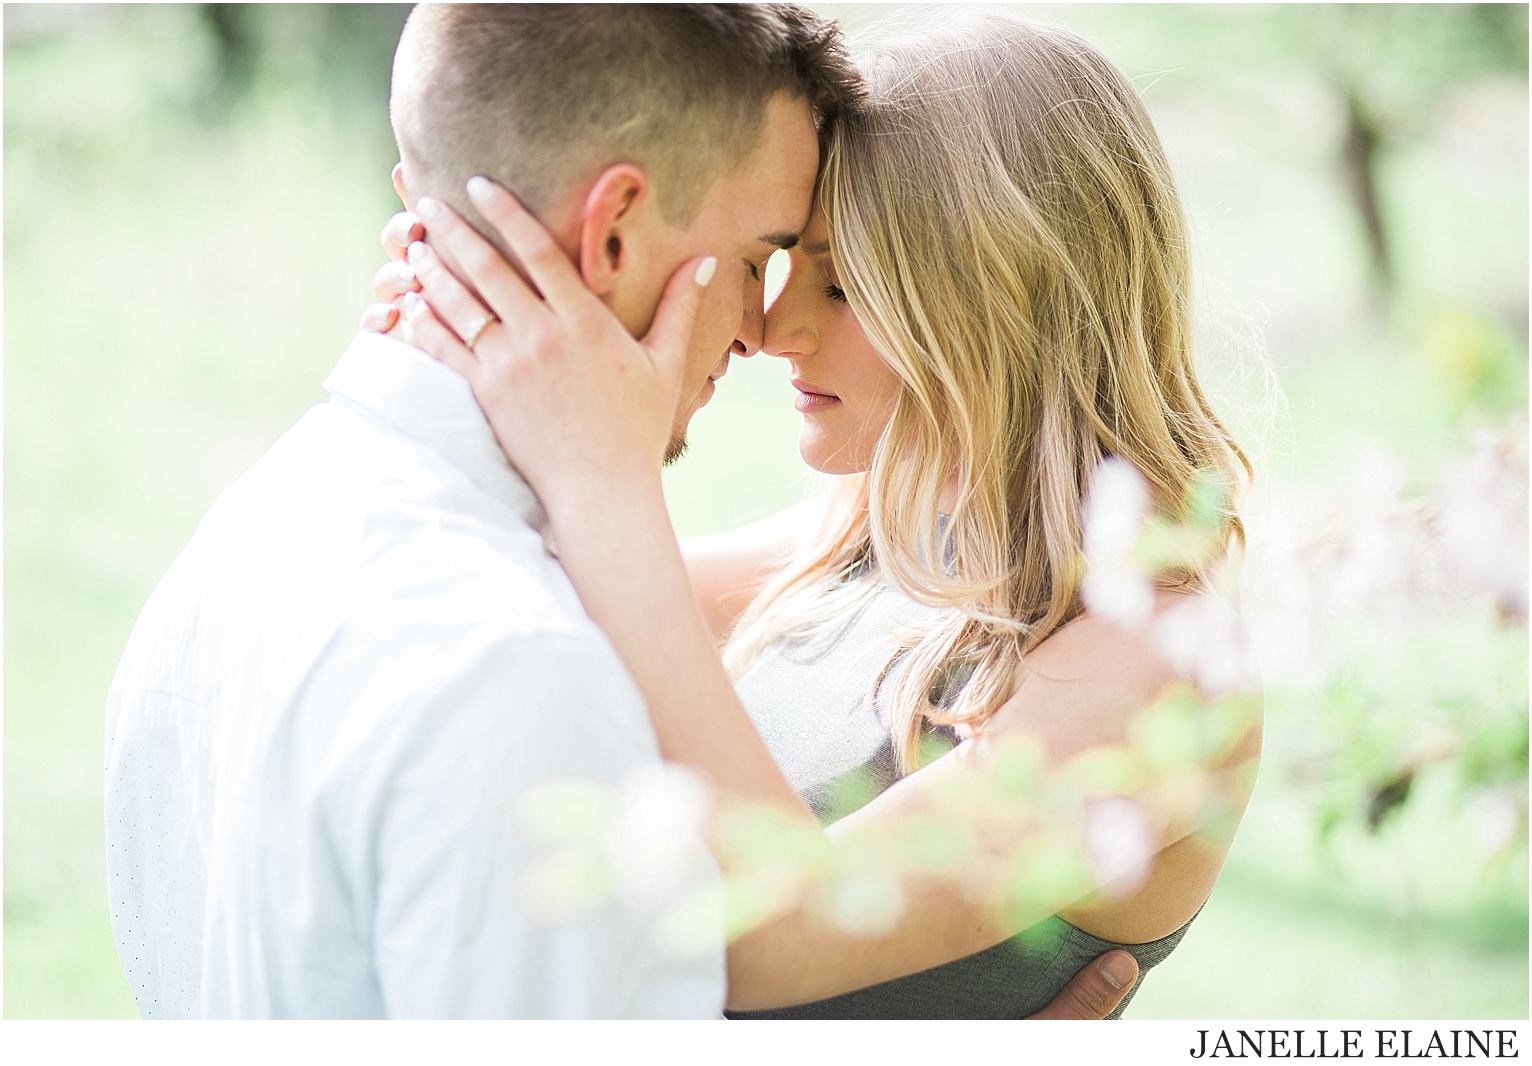 tricia and nate engagement photos-janelle elaine photography-74.jpg